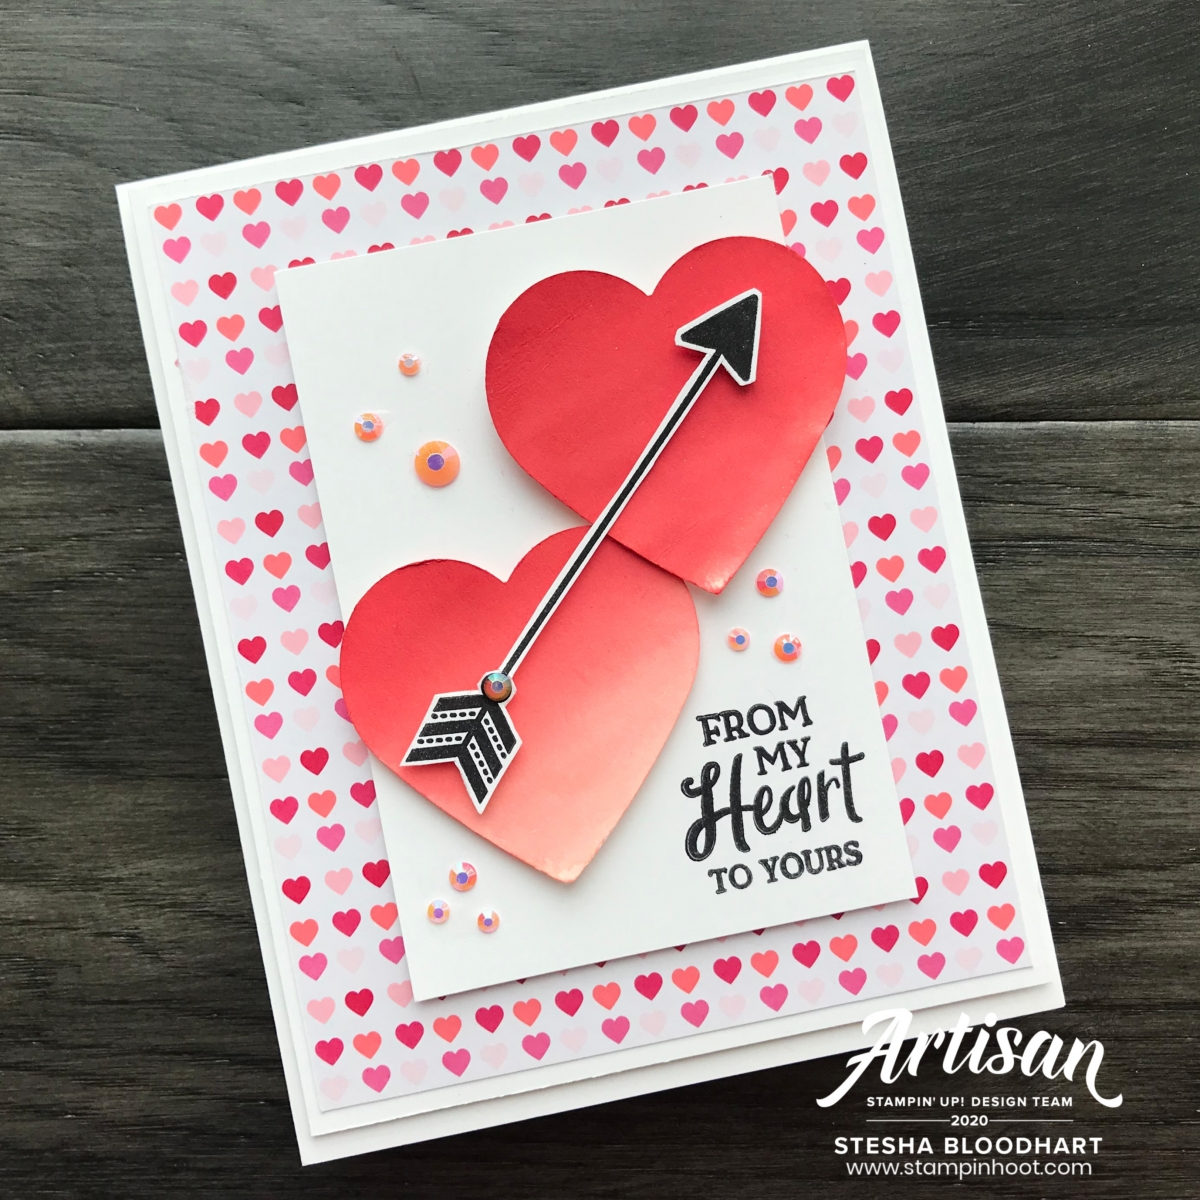 From My Heart Suite Bundle from Stampin' Up! Creations by Stesha Bloodhart, Stampin' Hoot! 2020 Artisan Design Team Blog Hop Card